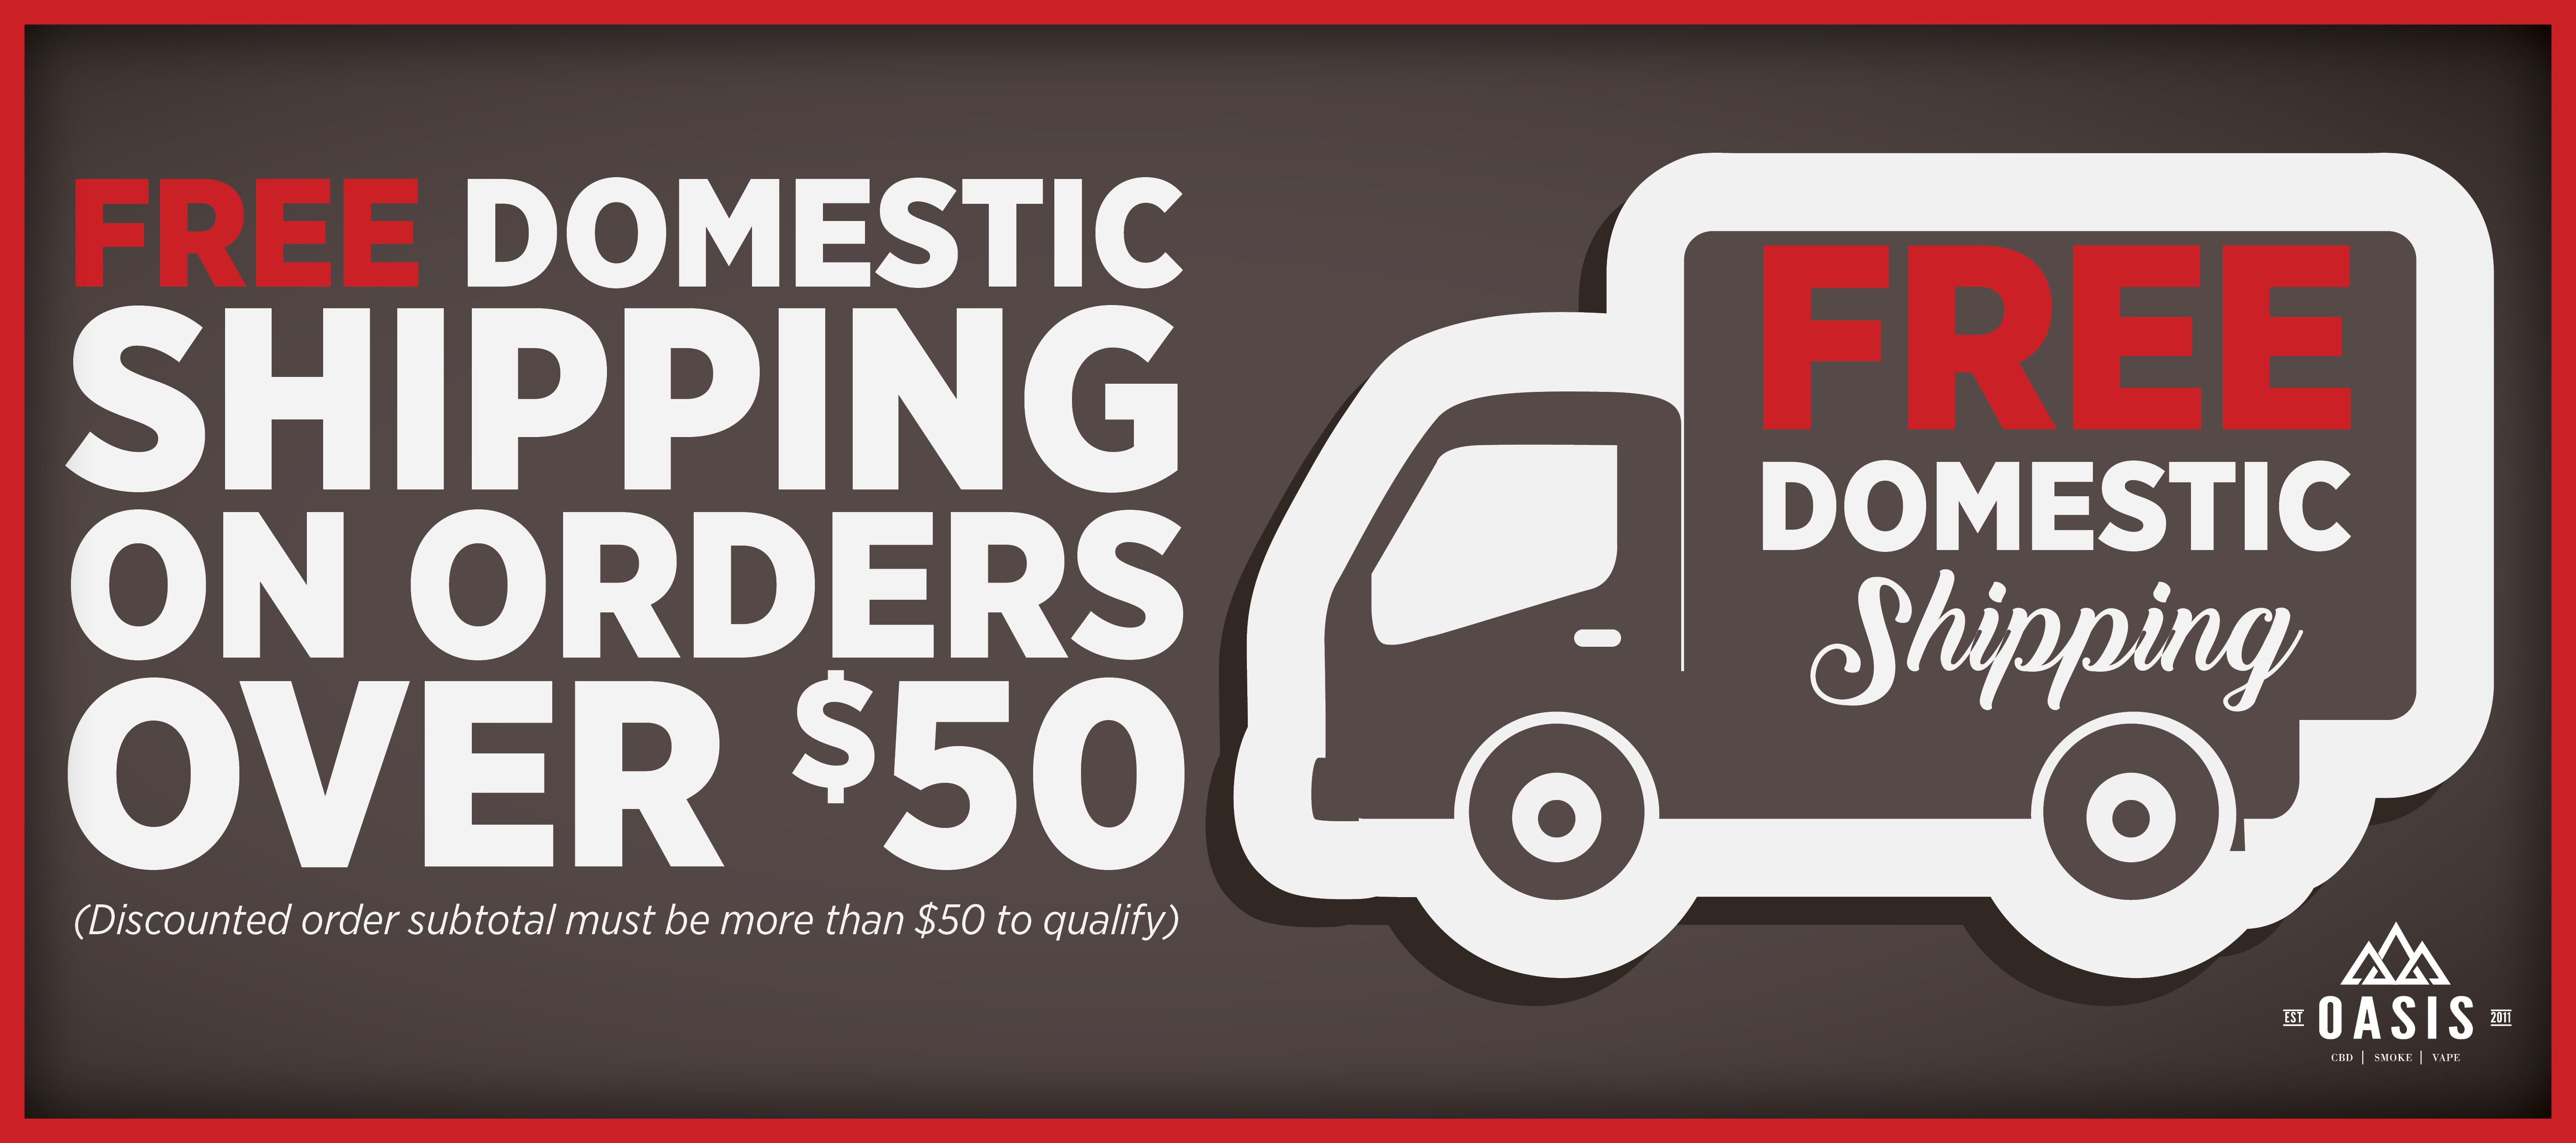 Free domestic shipping on orders over $50. Subtotal must be more than $50